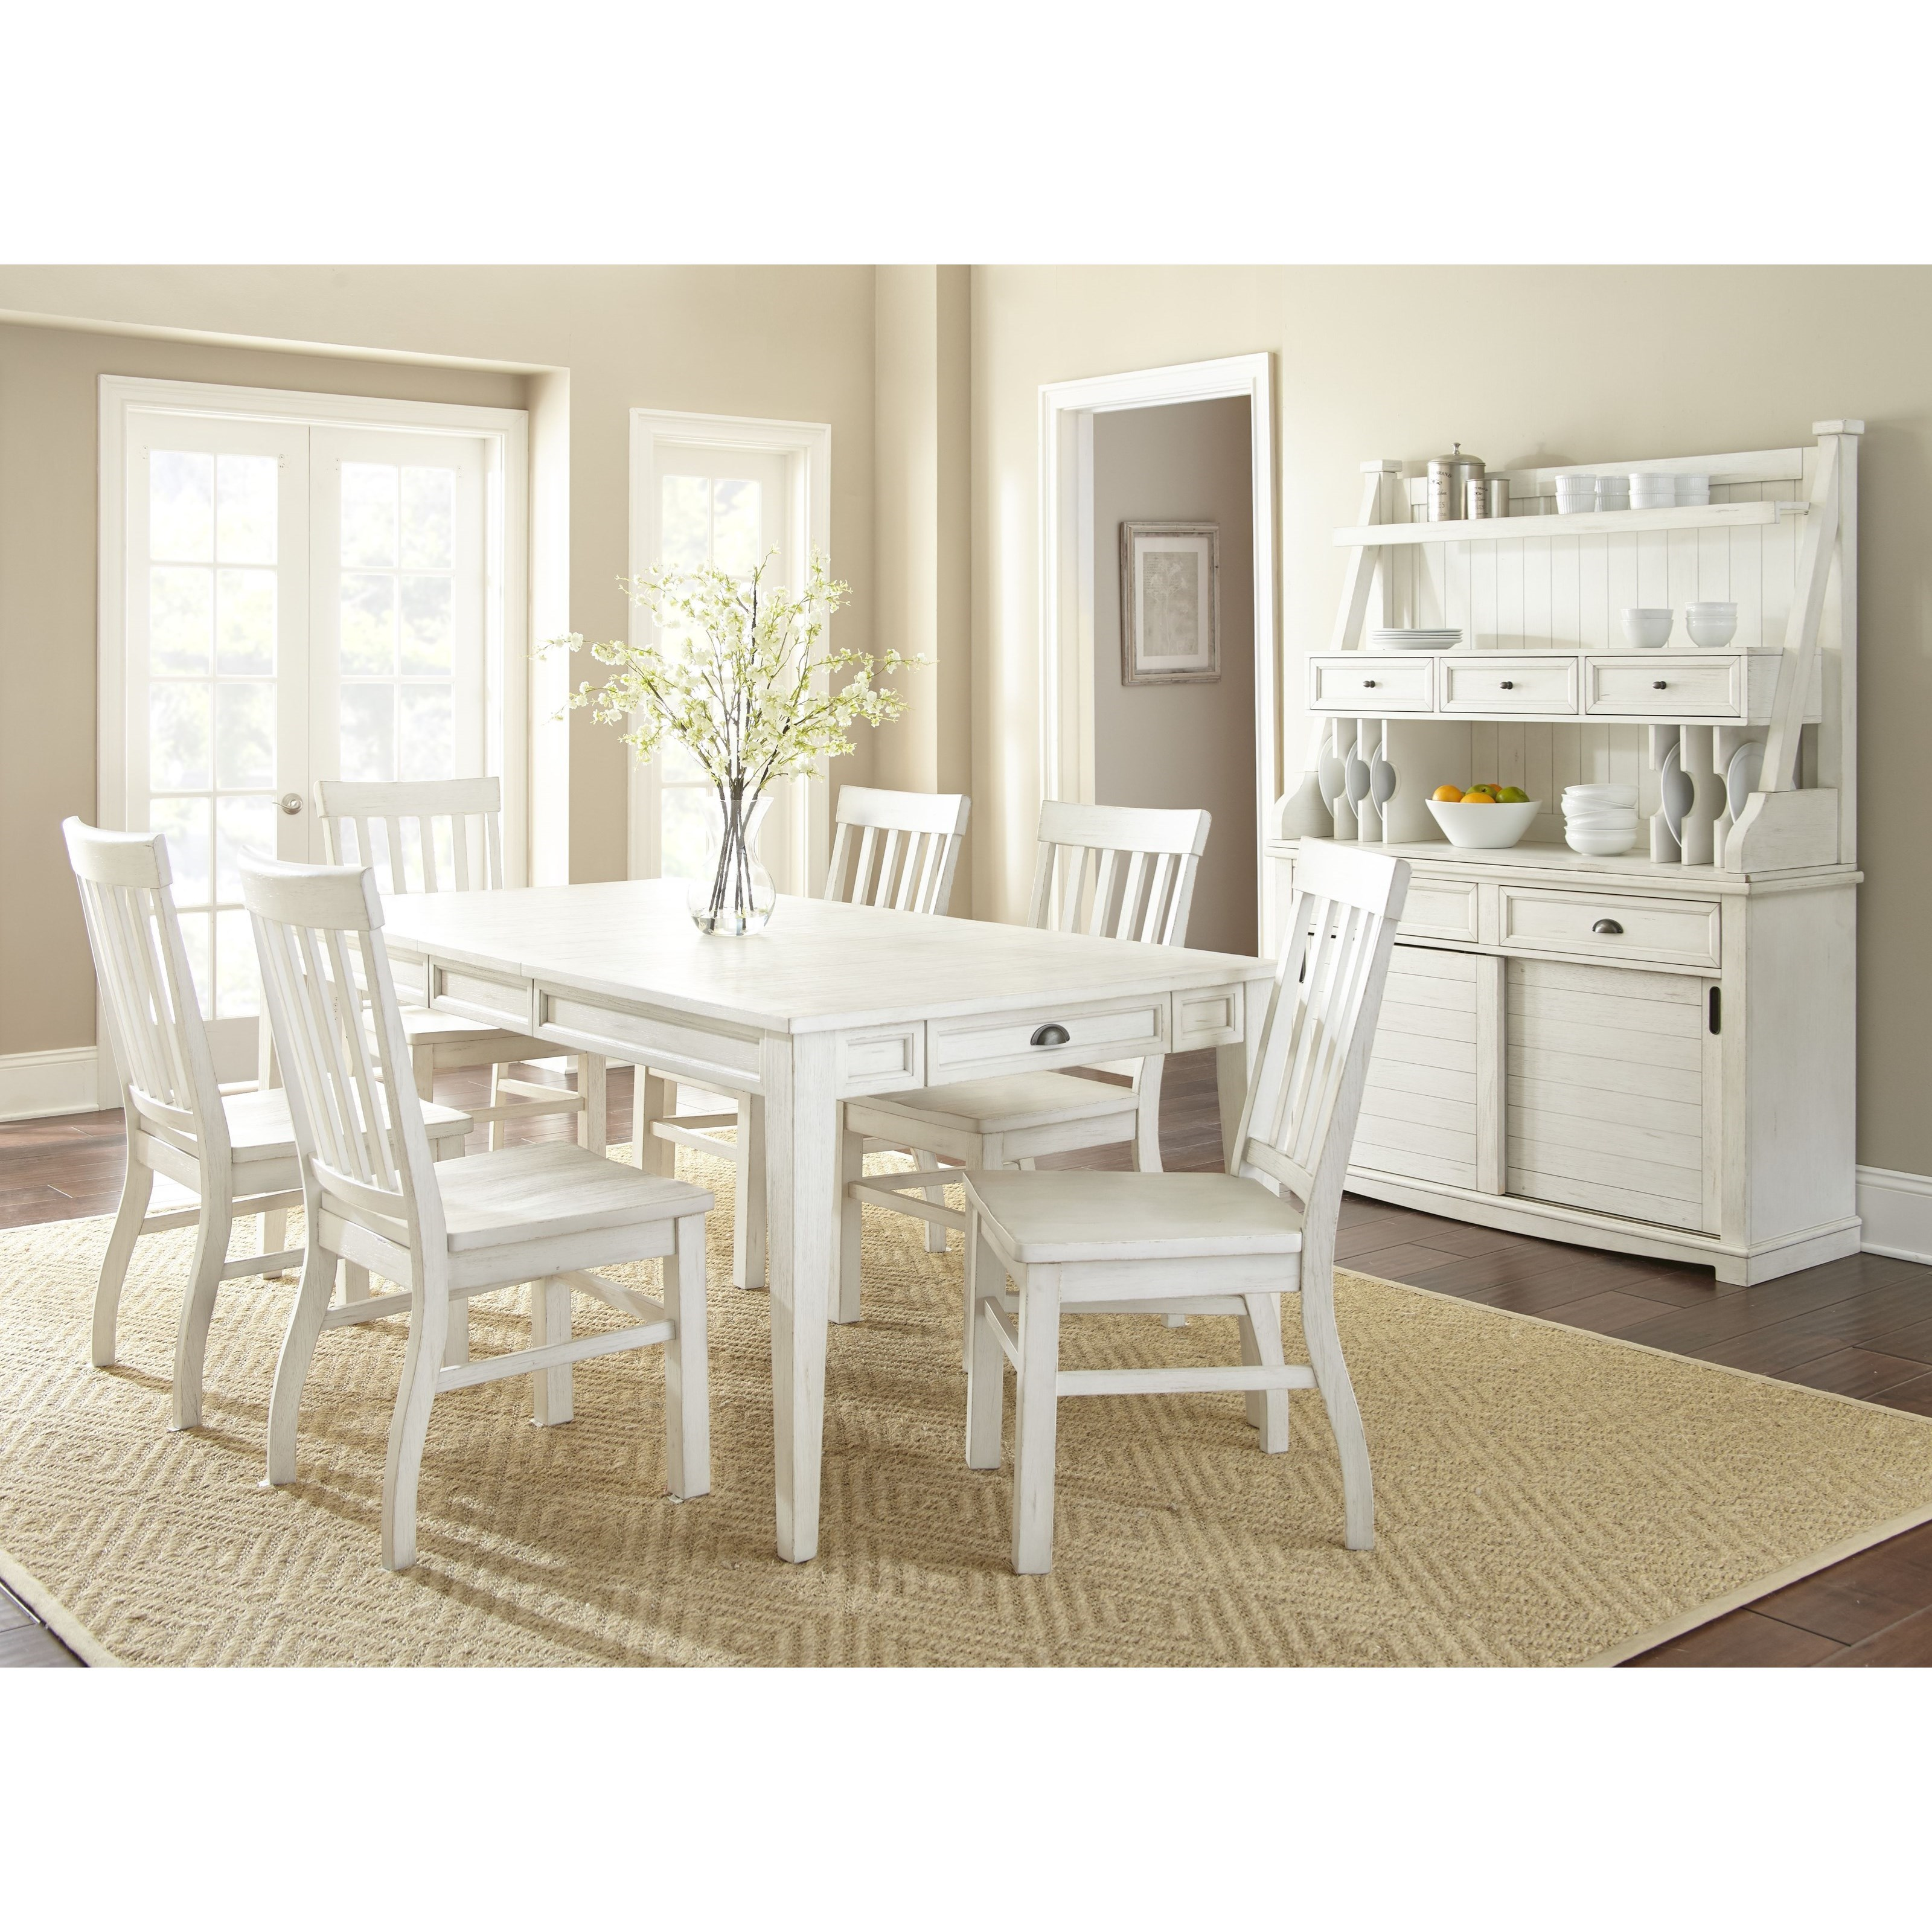 Cayla Dining Room Group by Steve Silver at Standard Furniture